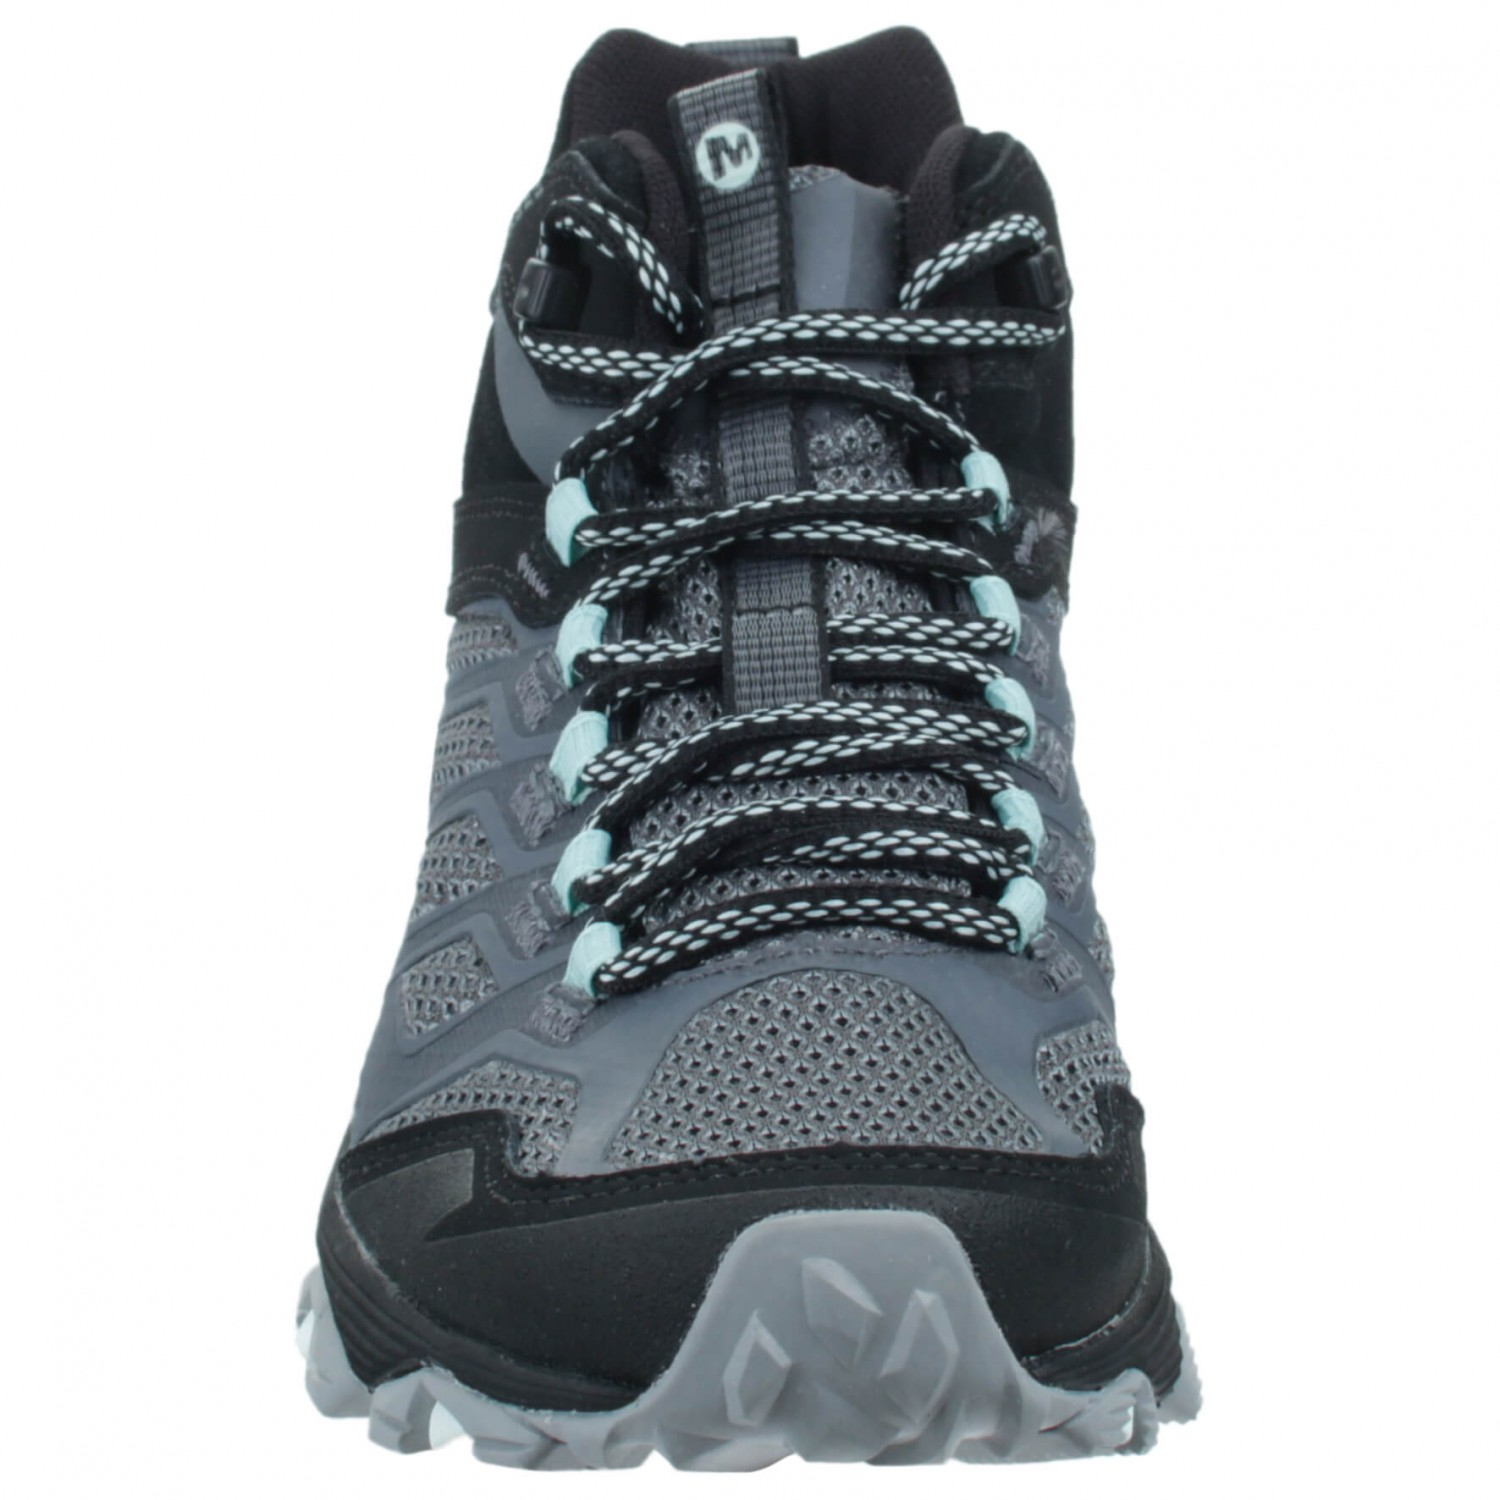 merrell moab fst mid gore tex walking boots women 39 s. Black Bedroom Furniture Sets. Home Design Ideas